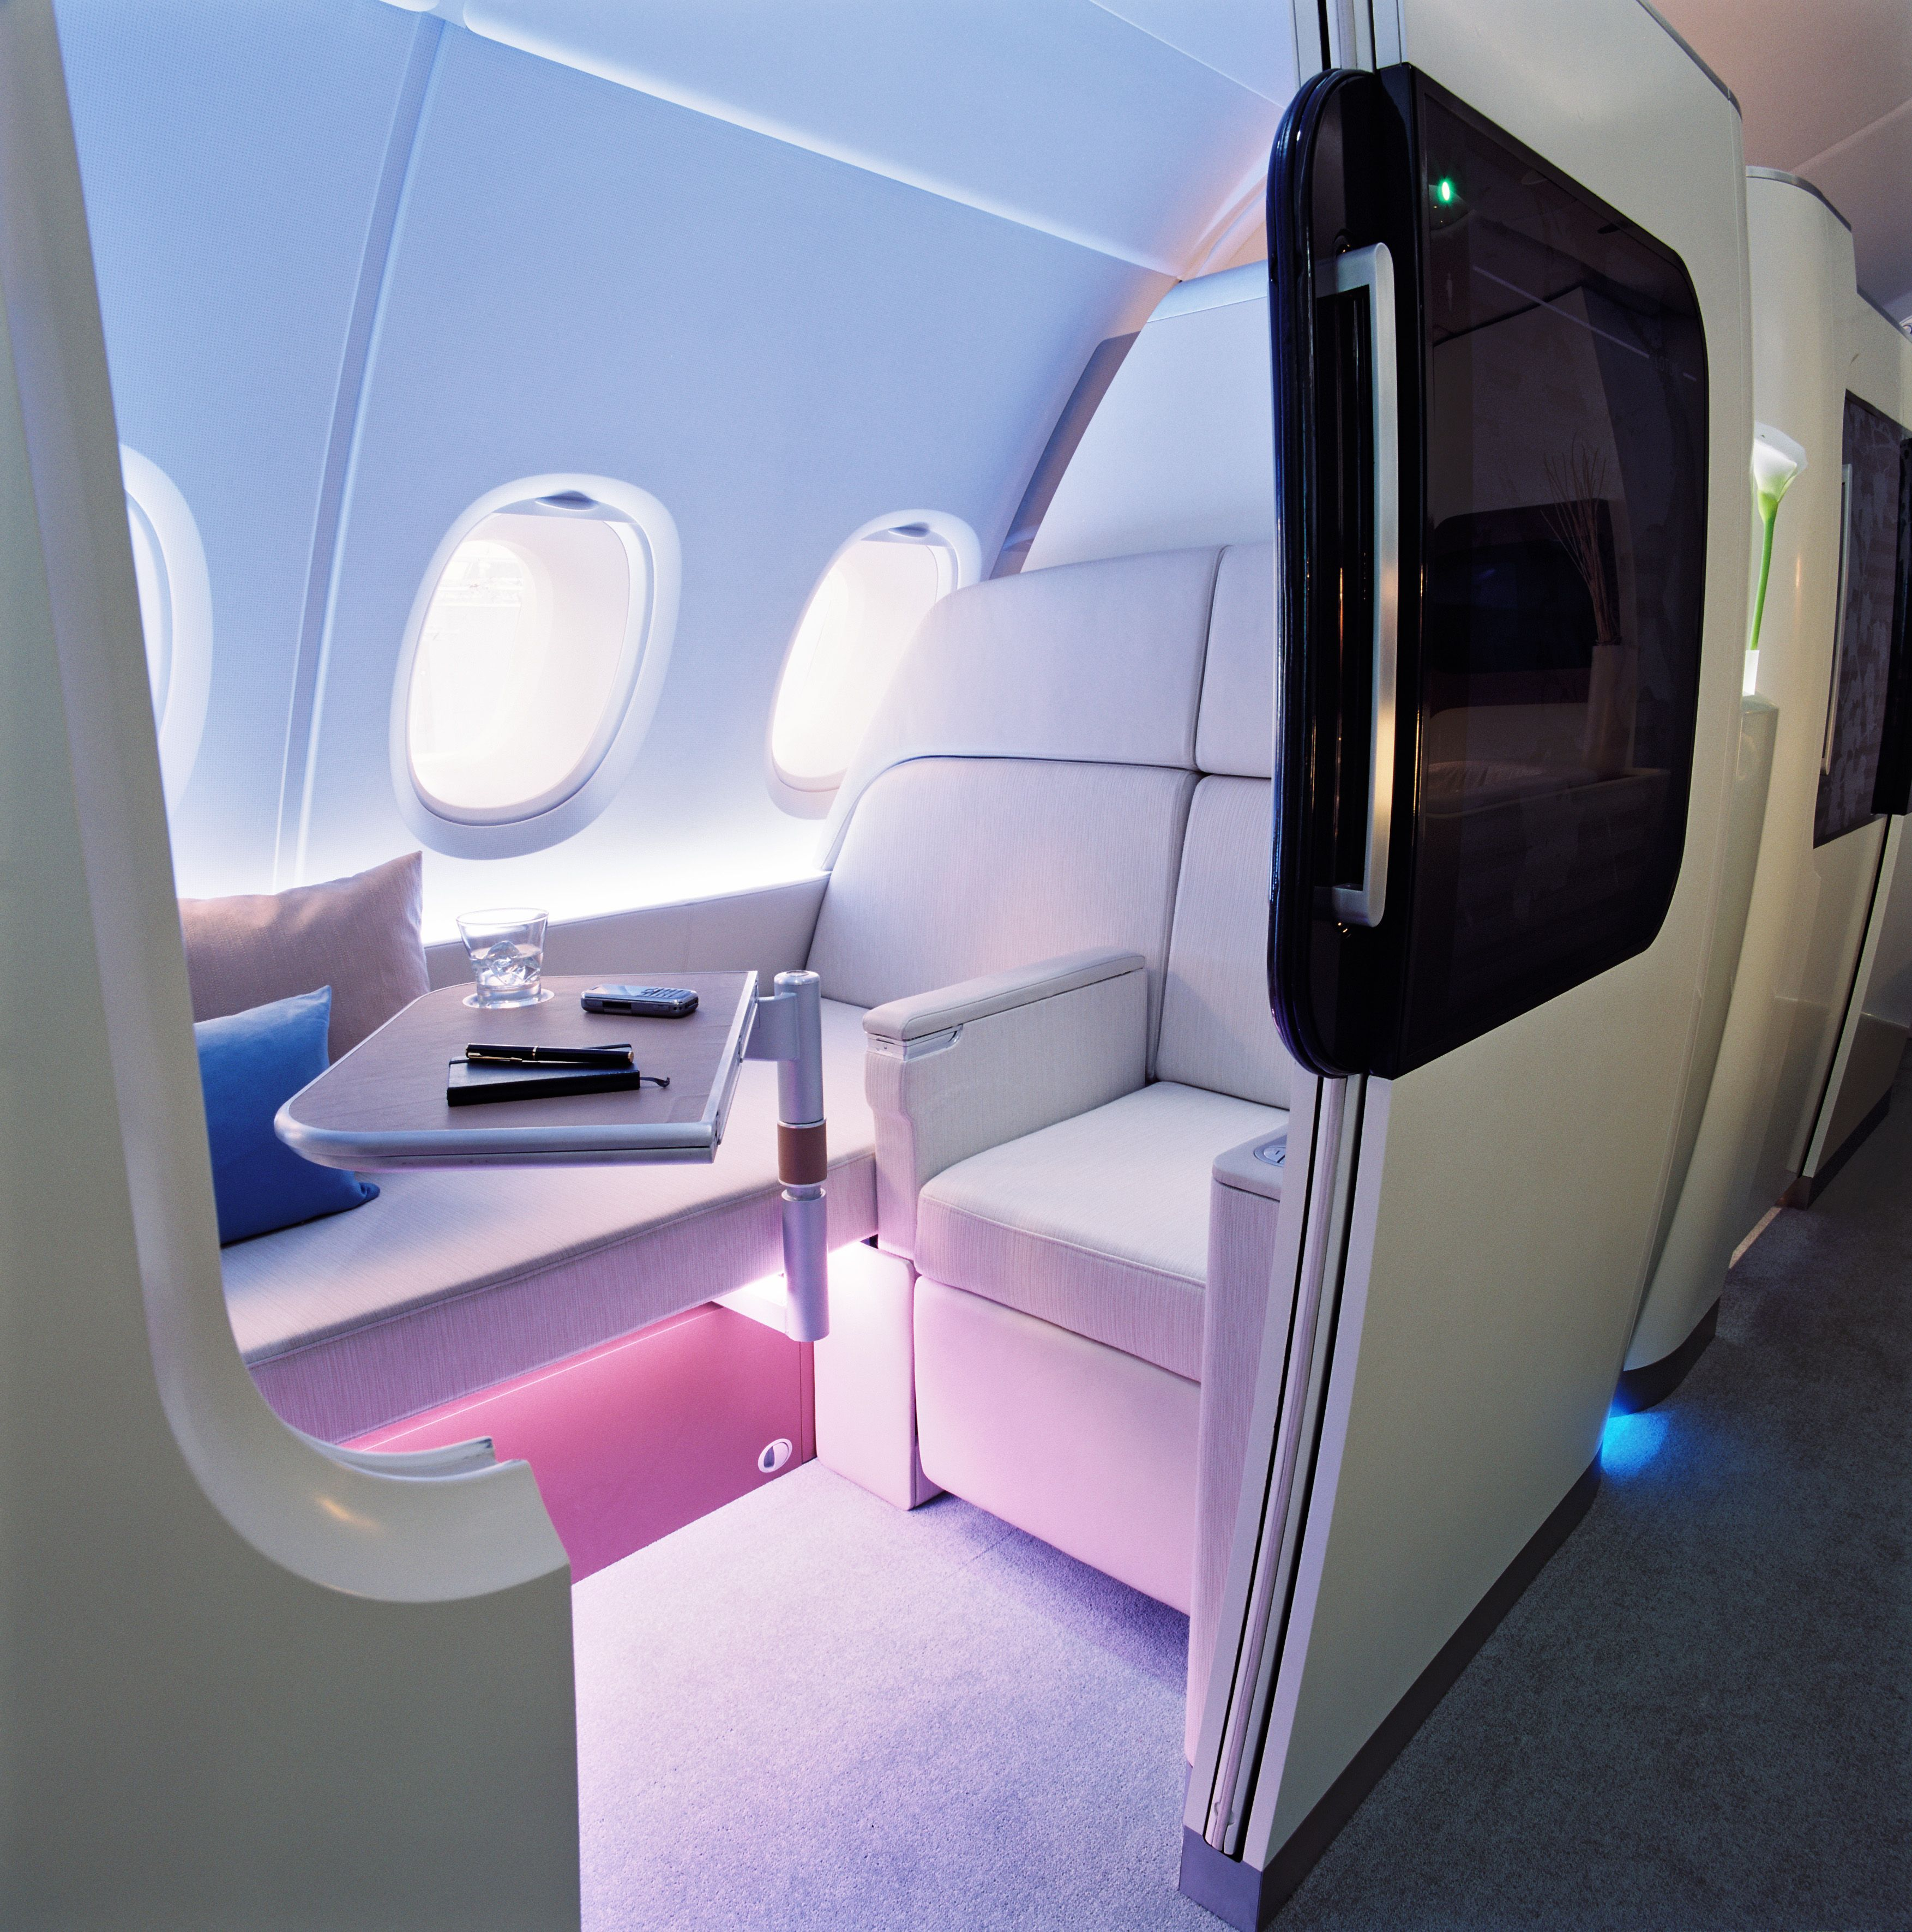 Airbus A380 Interior Private: Now That Looks Like The Way To Travel, It Also Looks VERY